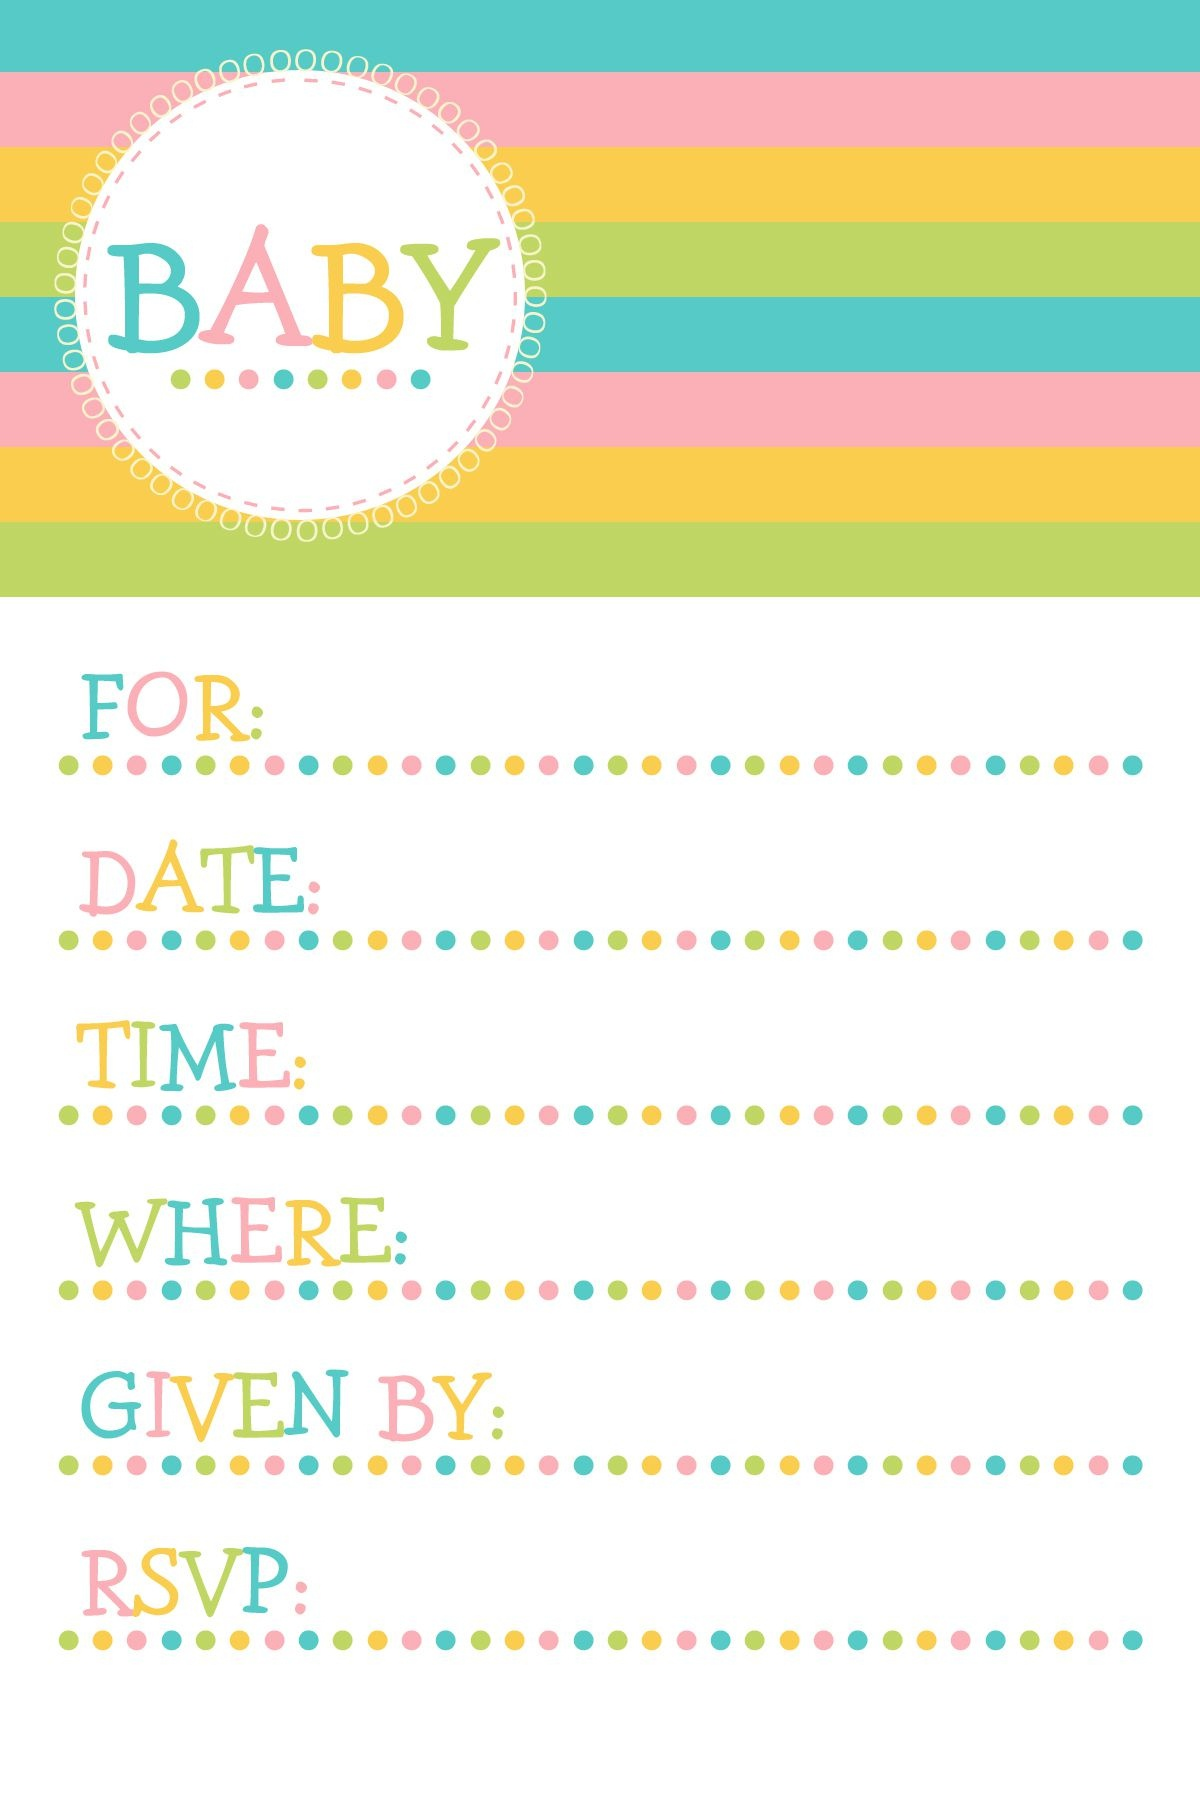 25 Adorable Free Printable Baby Shower Invitations - Free Stork Party Invitations Printable